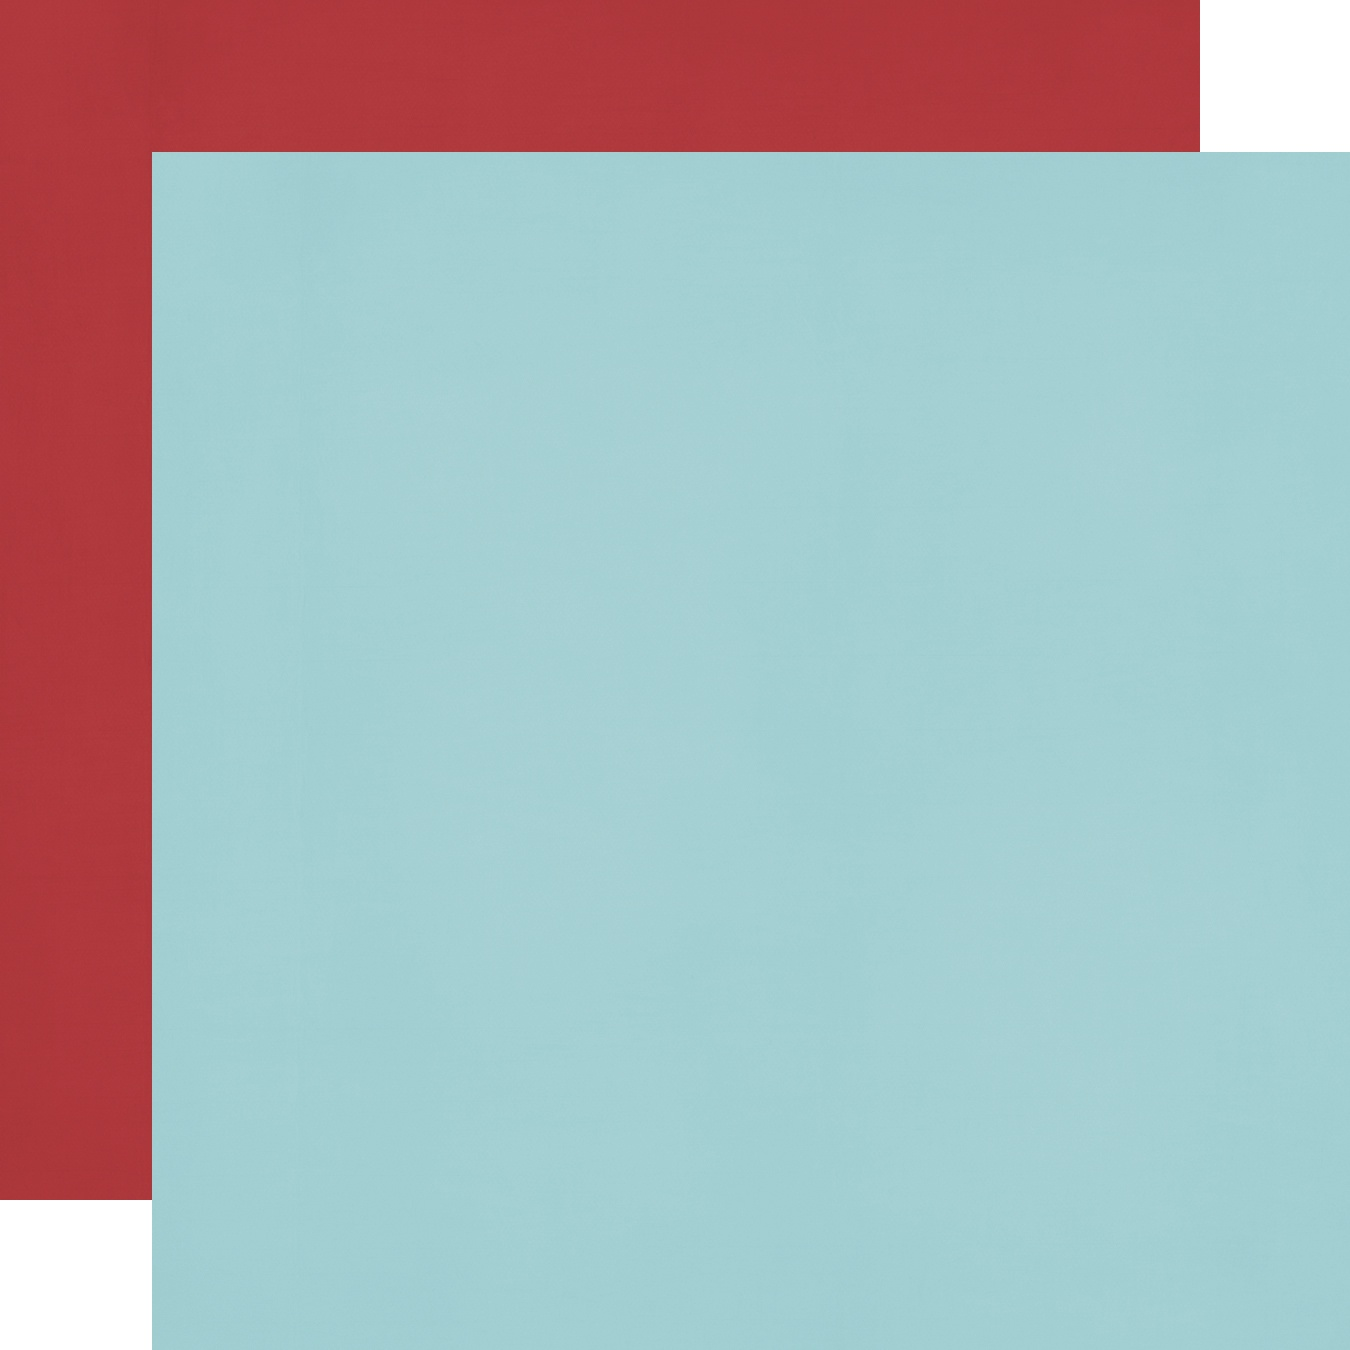 Cruisin' Double-Sided Cardstock 12X12-Red/Light Blue Simple Basic